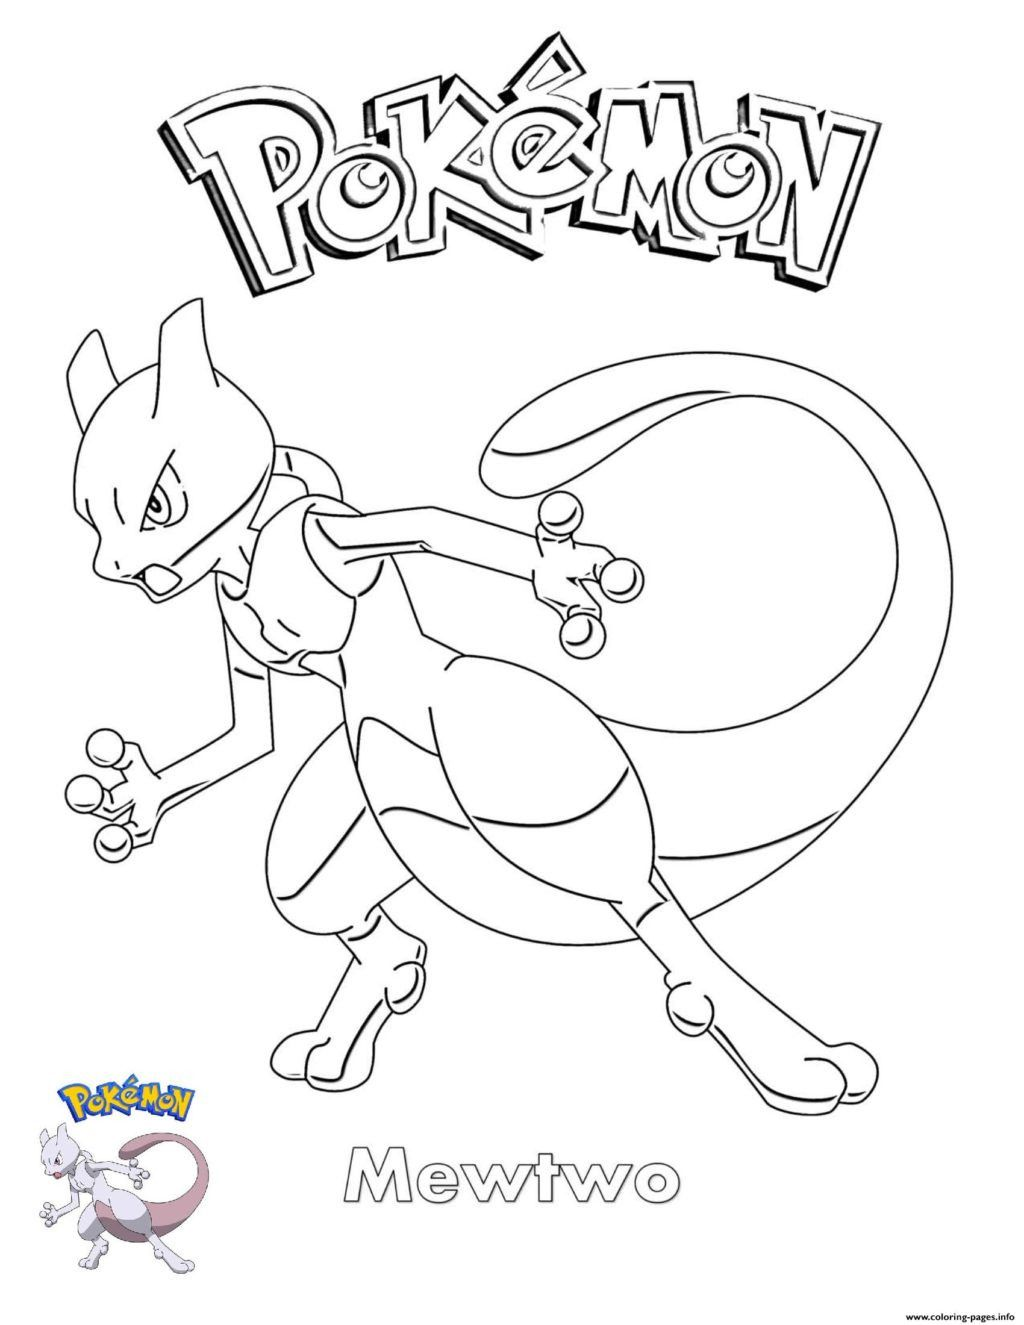 Pokemon Card Coloring Page Youngandtae Com In 2020 Pokemon Coloring Pages Coloring Pages Pokemon Coloring